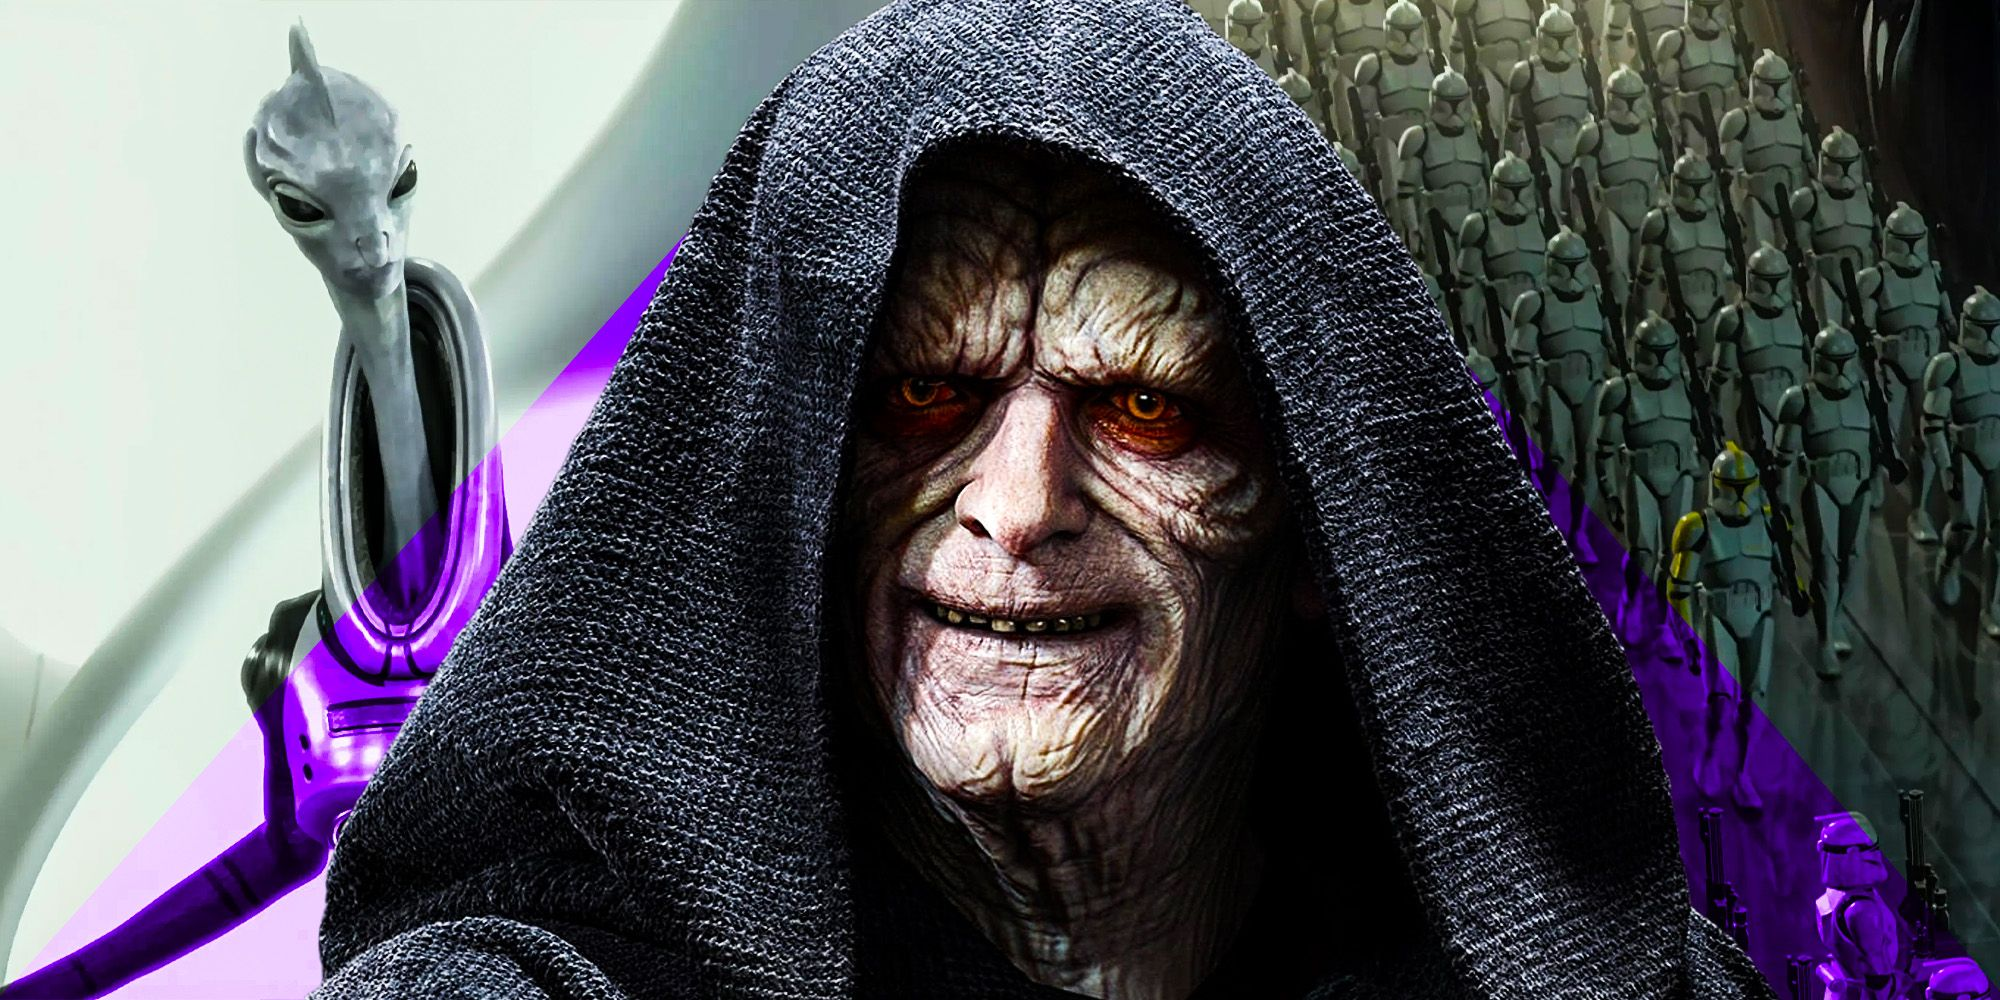 Star Wars Hints At Palpatine's Clone Plan 49 Years Before Star Wars Sequels